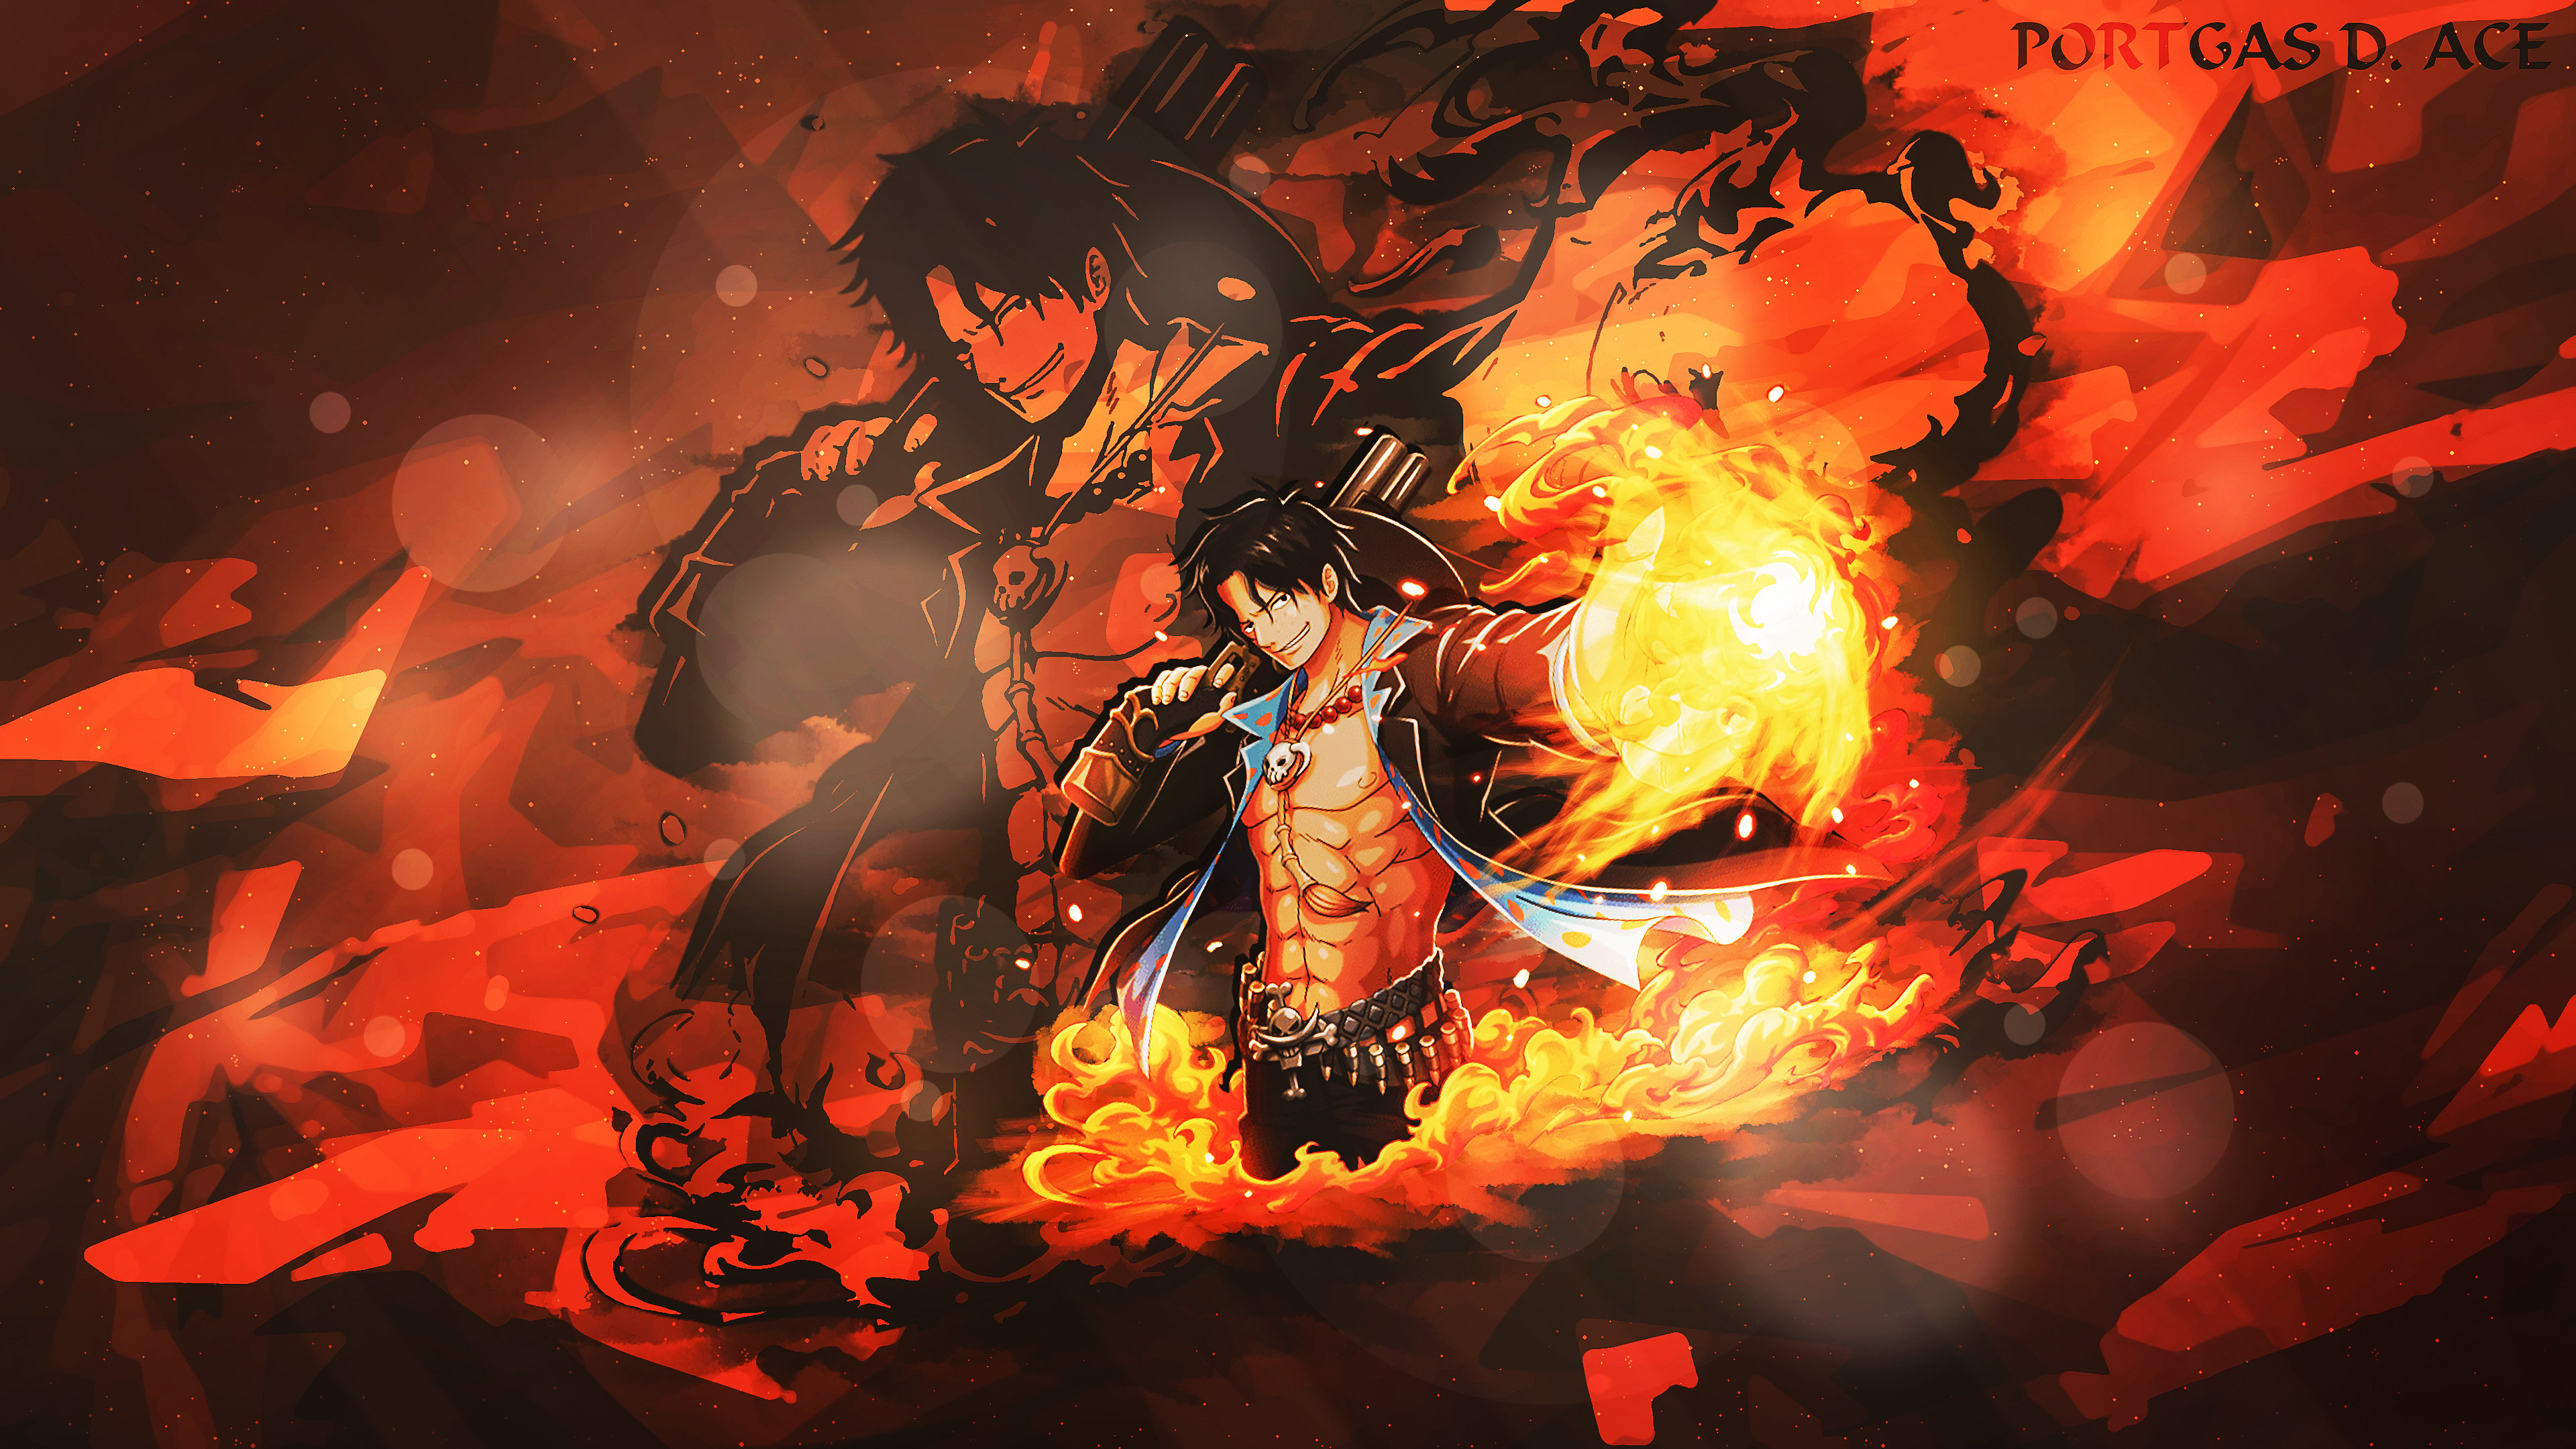 Best Portgas D. Ace wallpaper ID:314777 for High Resolution hd 4k PC